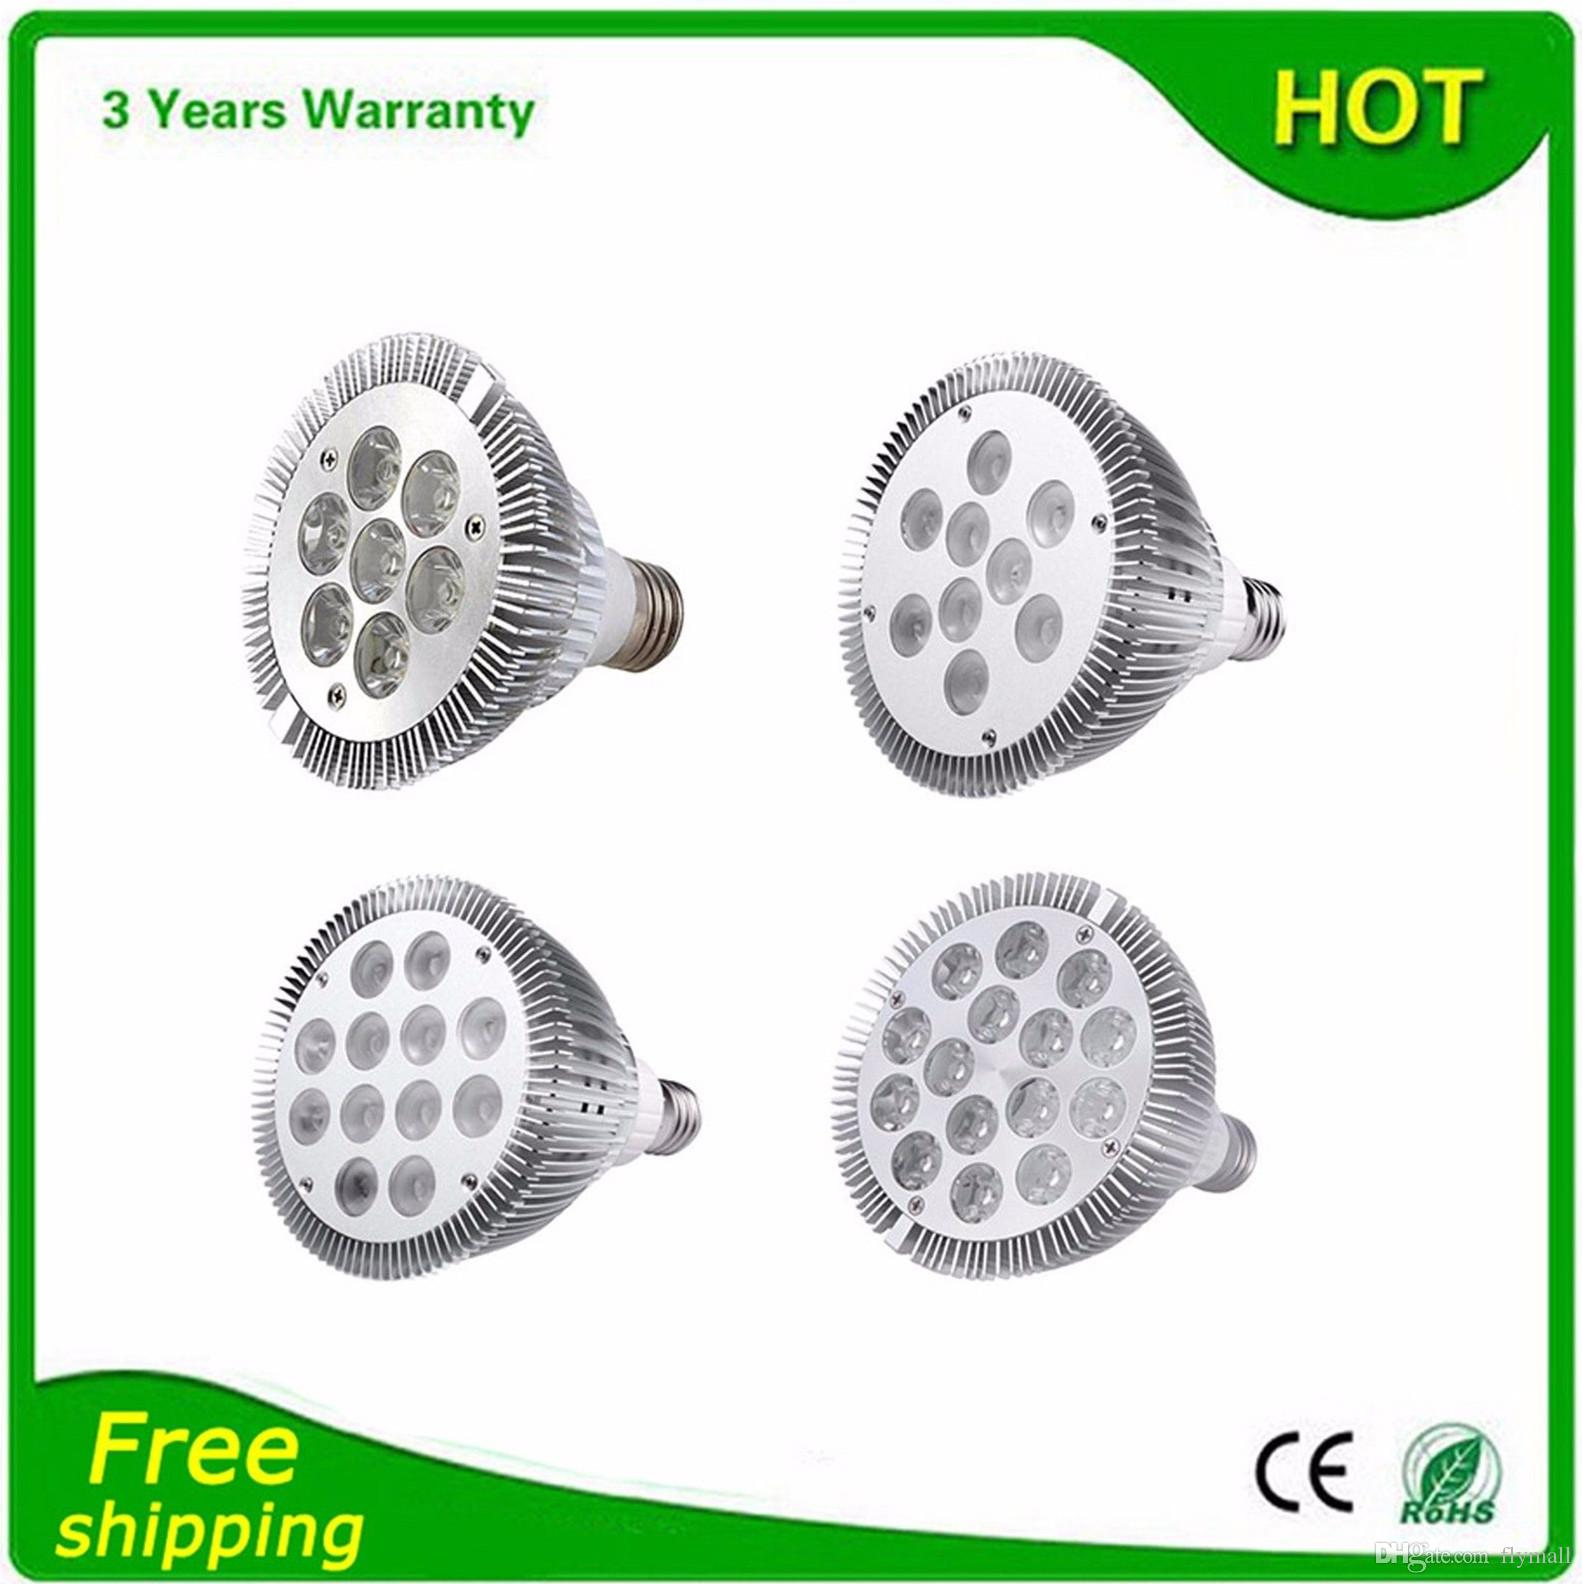 Ultra Bright Dimmable Led Bulb par38 par30 par20 85-265V 9W 10W 14W 18W 24W 30W 36W E27 par 20 30 38 LED Spot Lamp Light Downlight